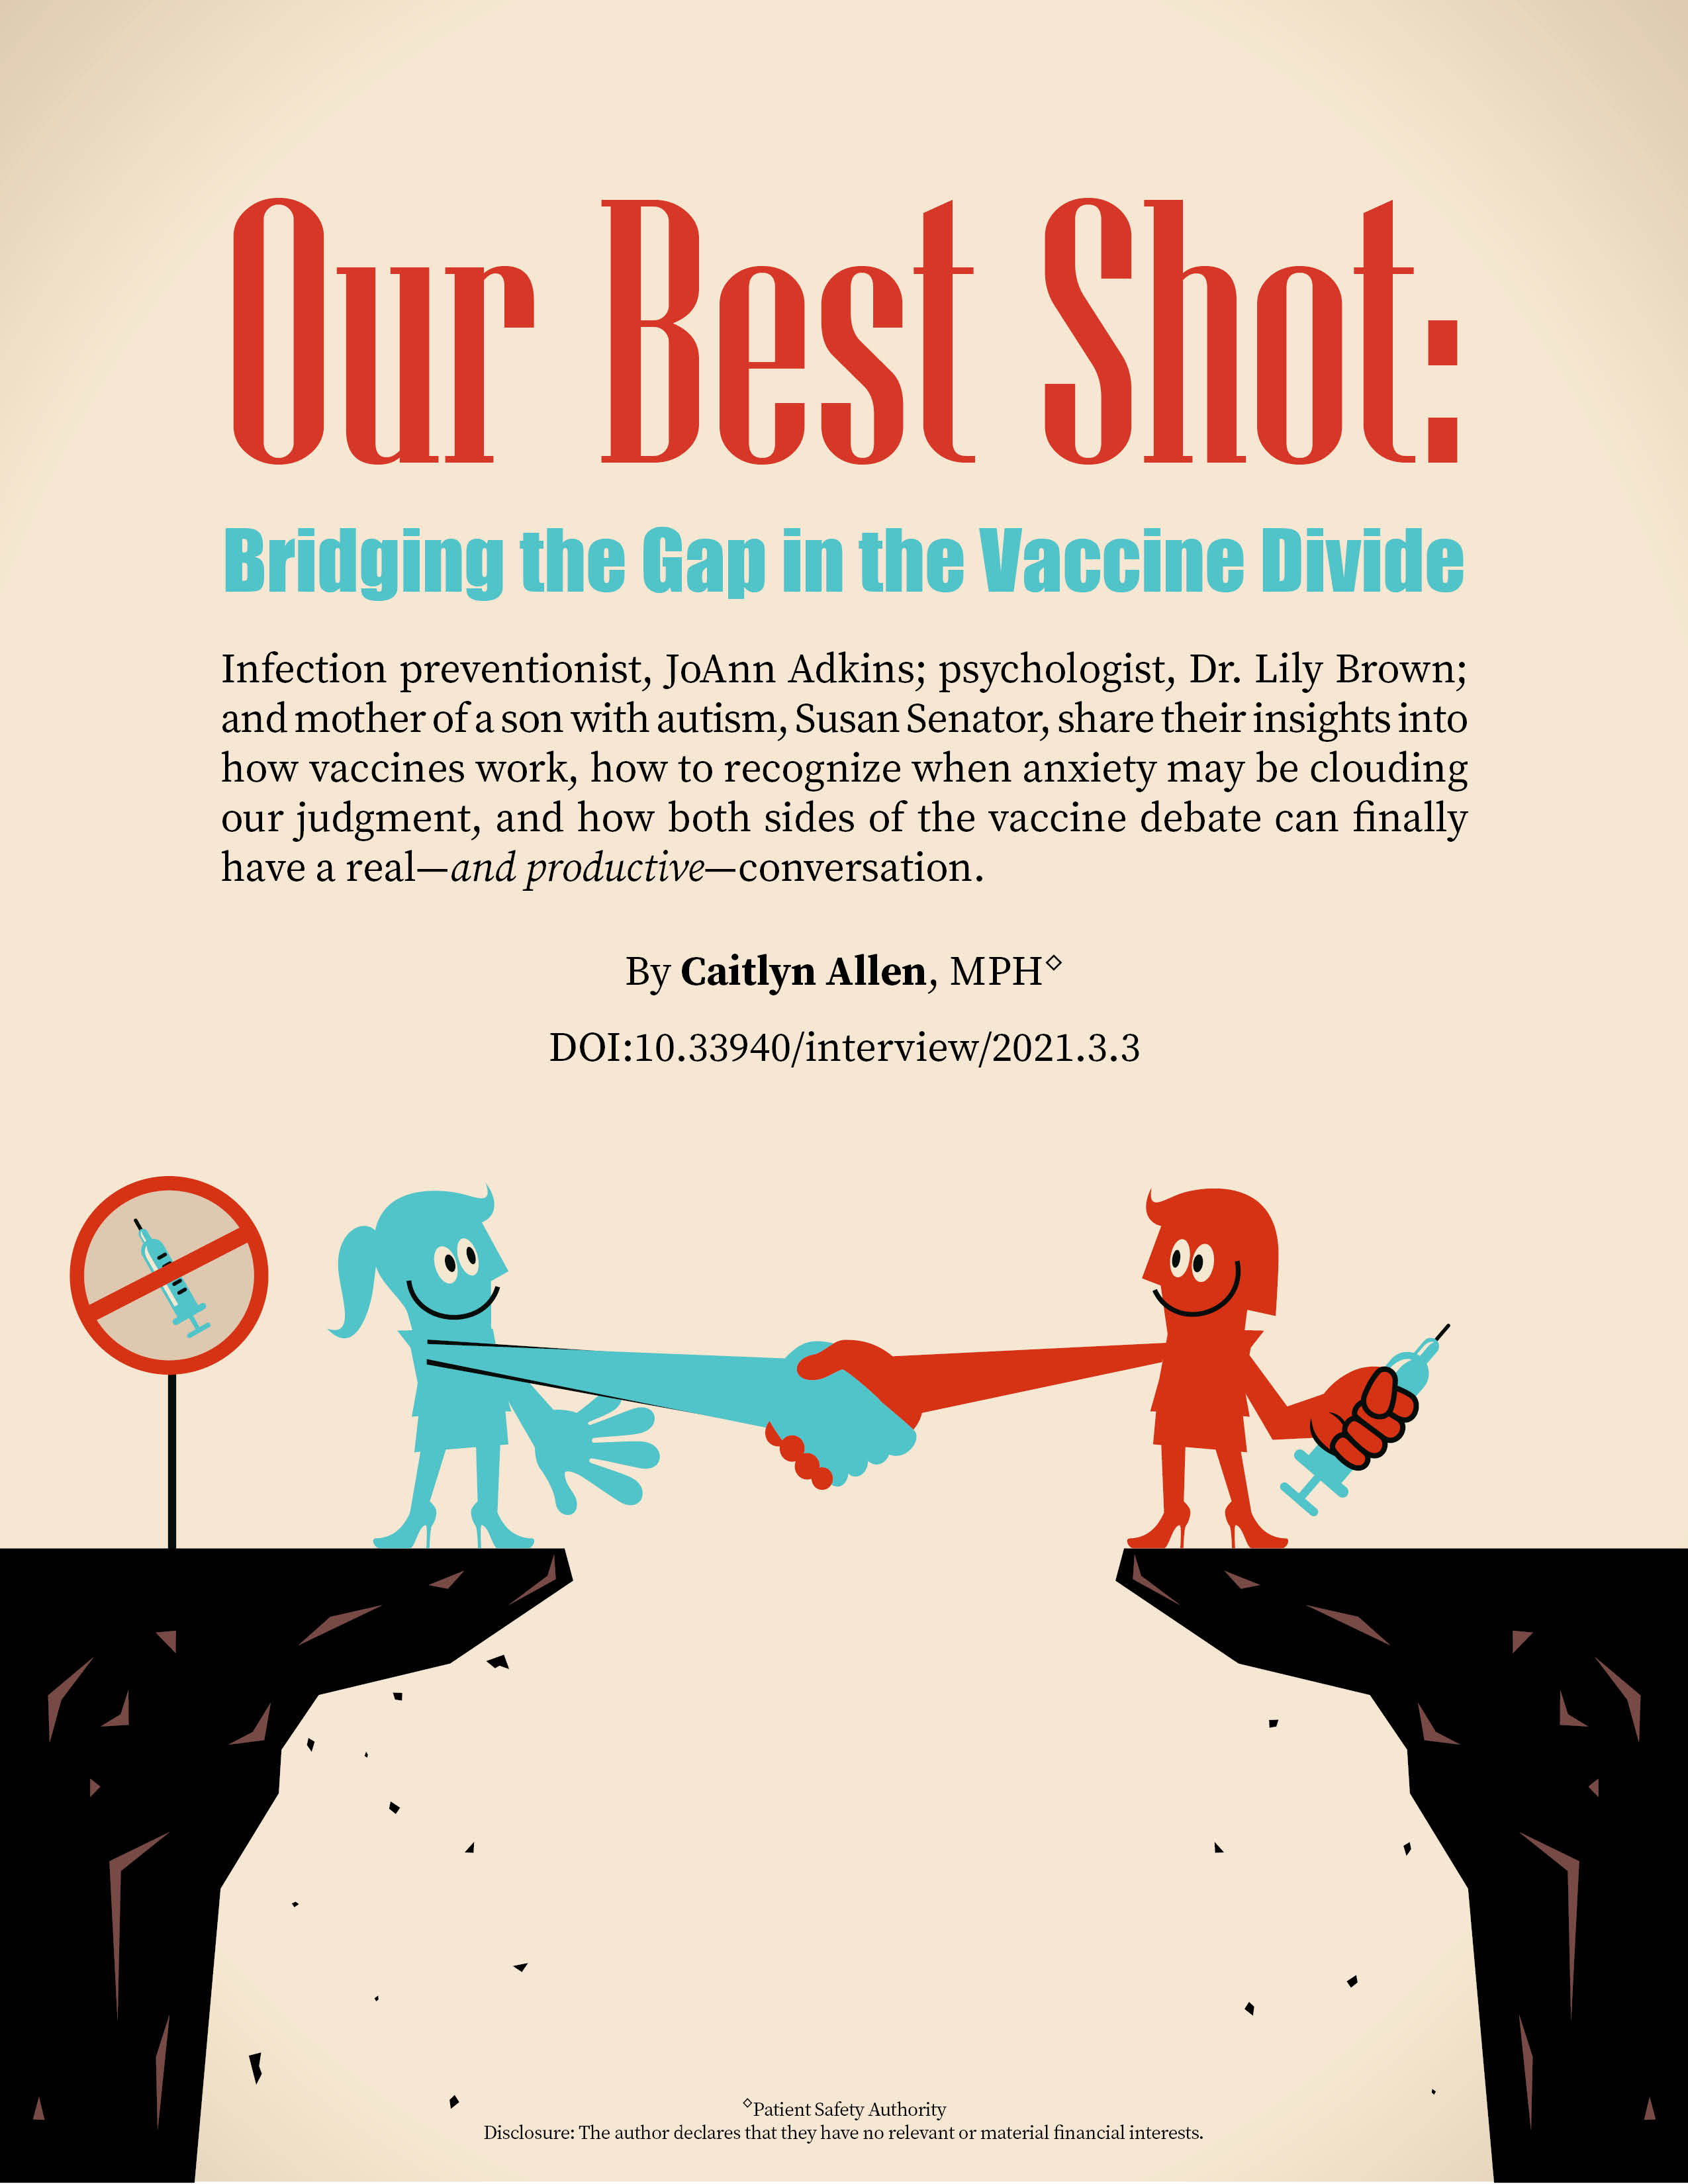 Two women cartoon characters standing on cliffs, one with a syringe (vaccine) in her hand.